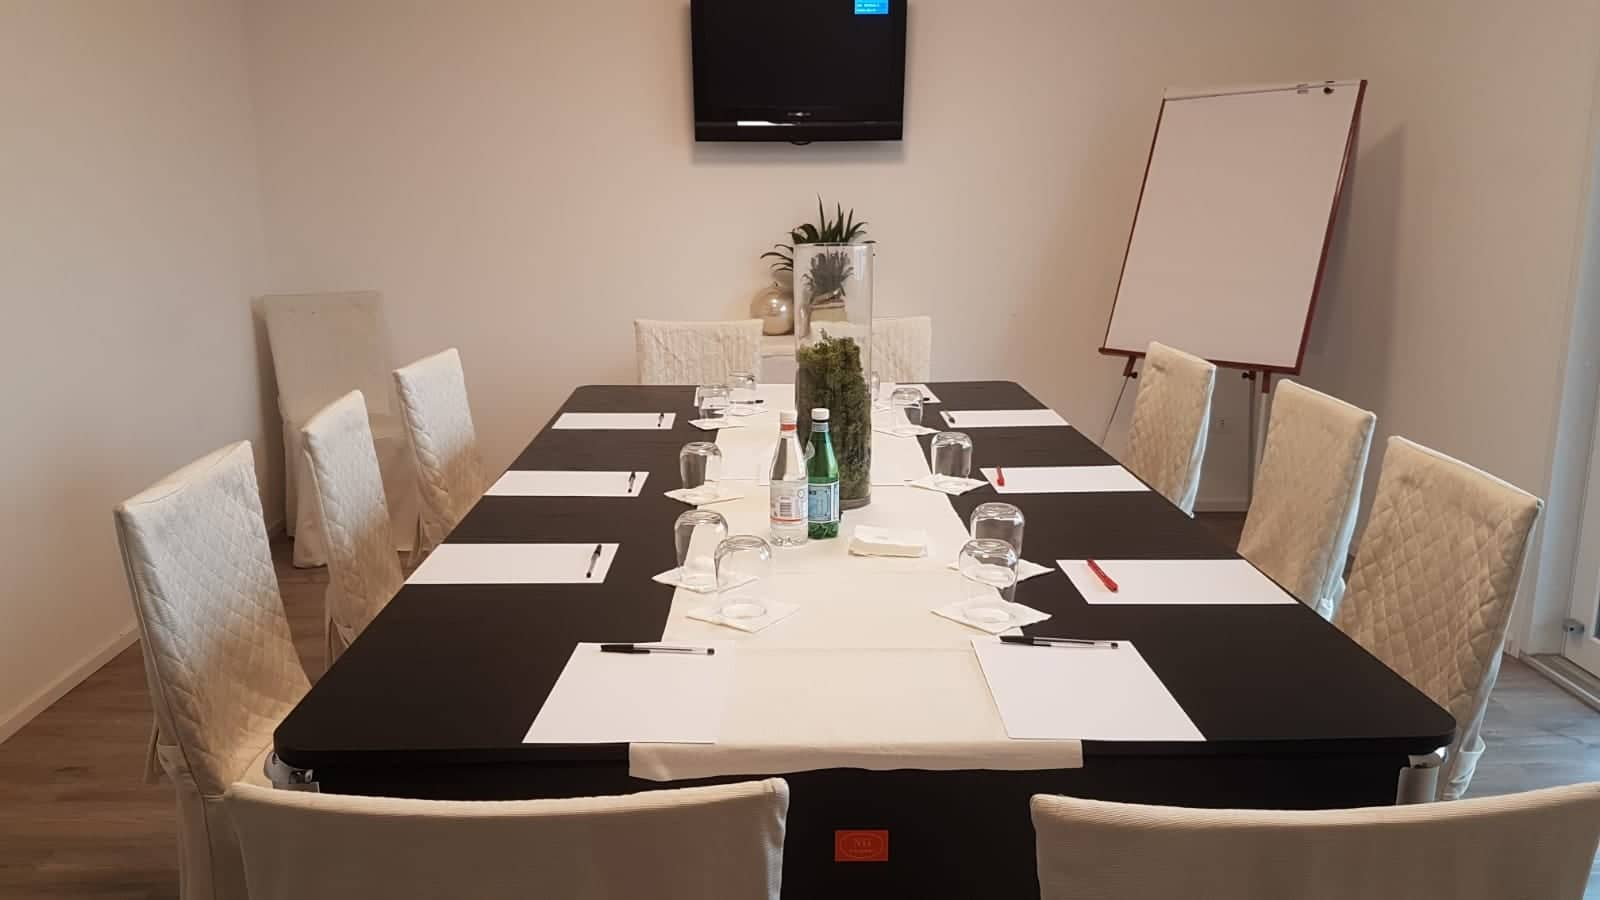 https://ristorantehotelpetrarca.it/wp-content/uploads/2019/01/sala_meeting_hotel_petrarca_boarapisani.jpg